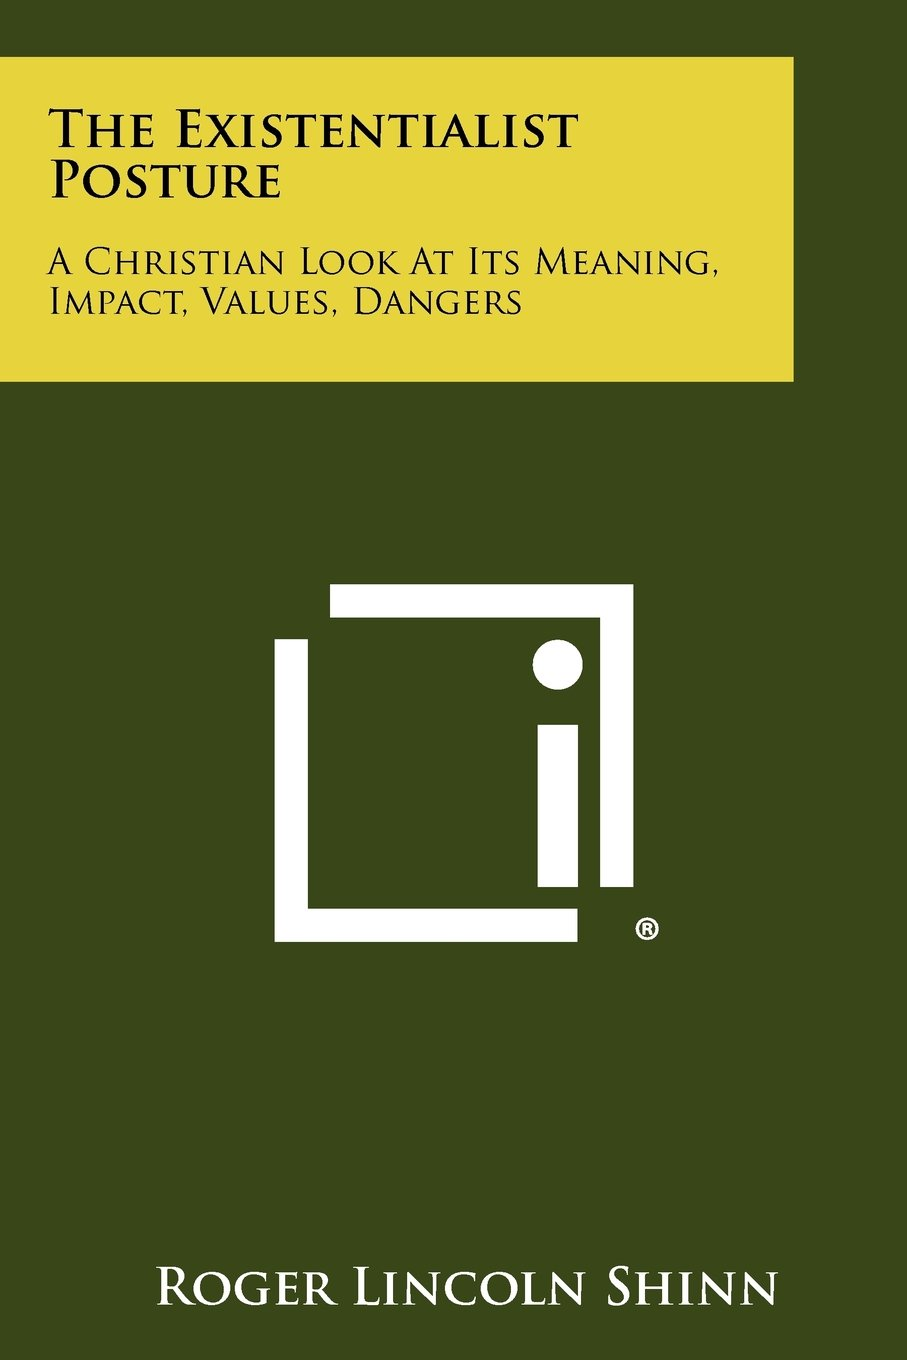 Download The Existentialist Posture: A Christian Look At Its Meaning, Impact, Values, Dangers PDF